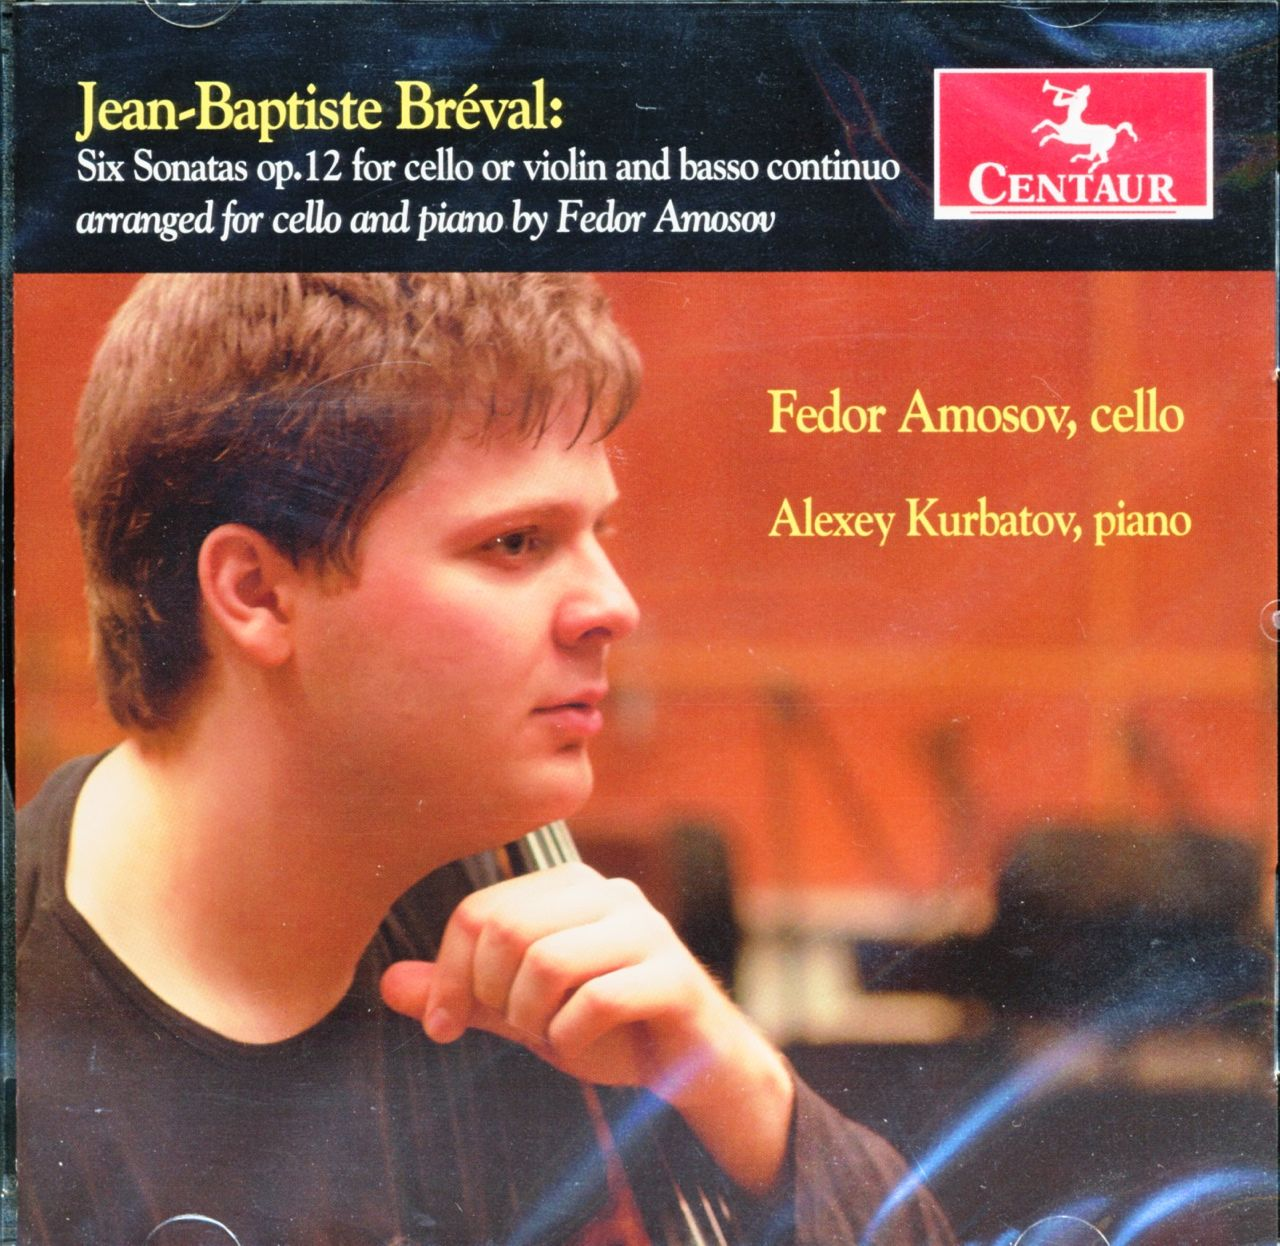 Six Sonatas for Cello, Op.12, J.B Breval